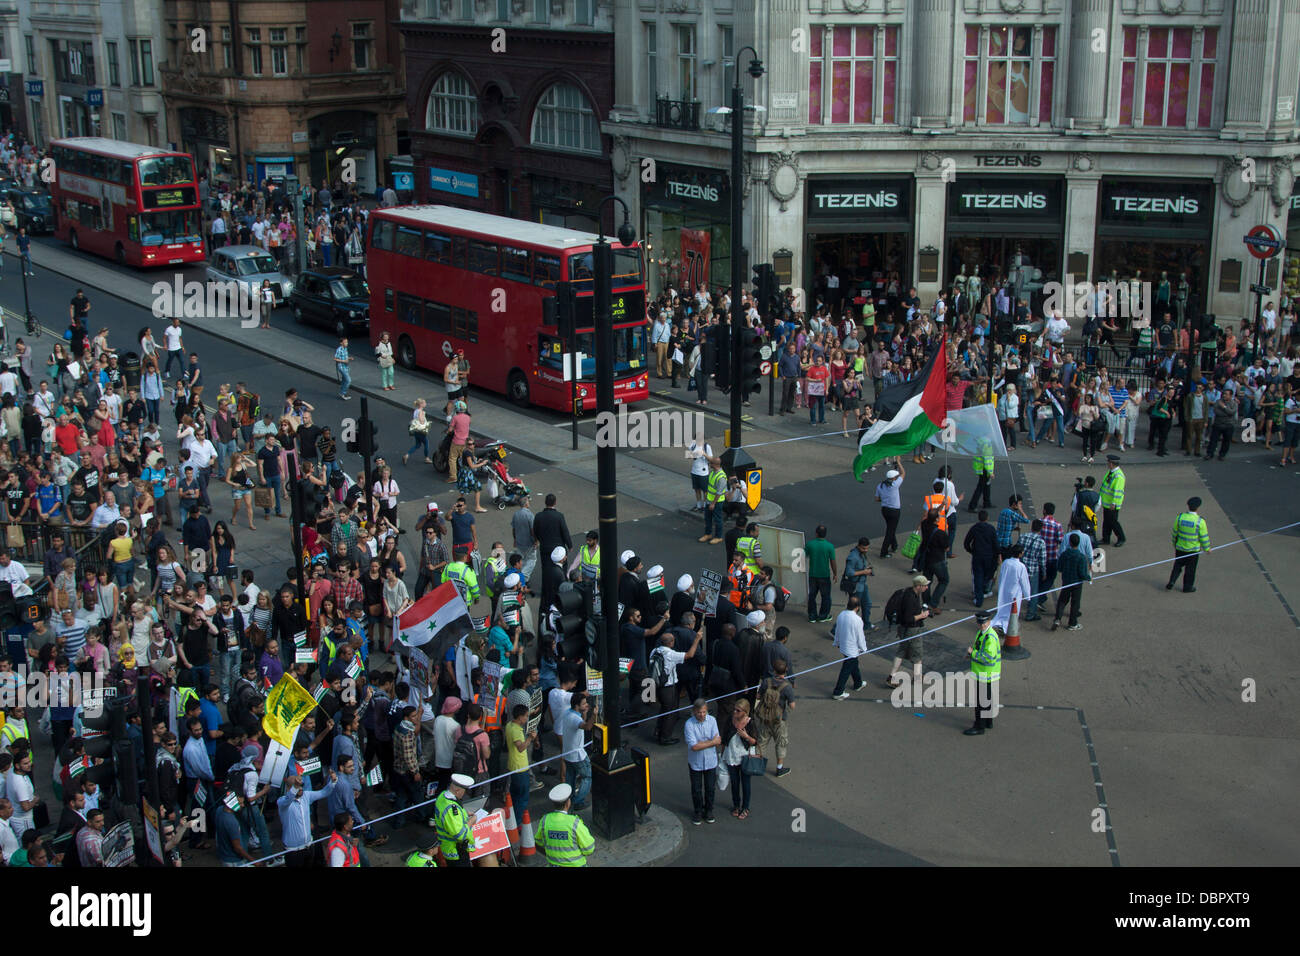 London, UK. 2nd August 2013. Over thousand march through central London in a rally organized by the Al Quds committee - Stock Image